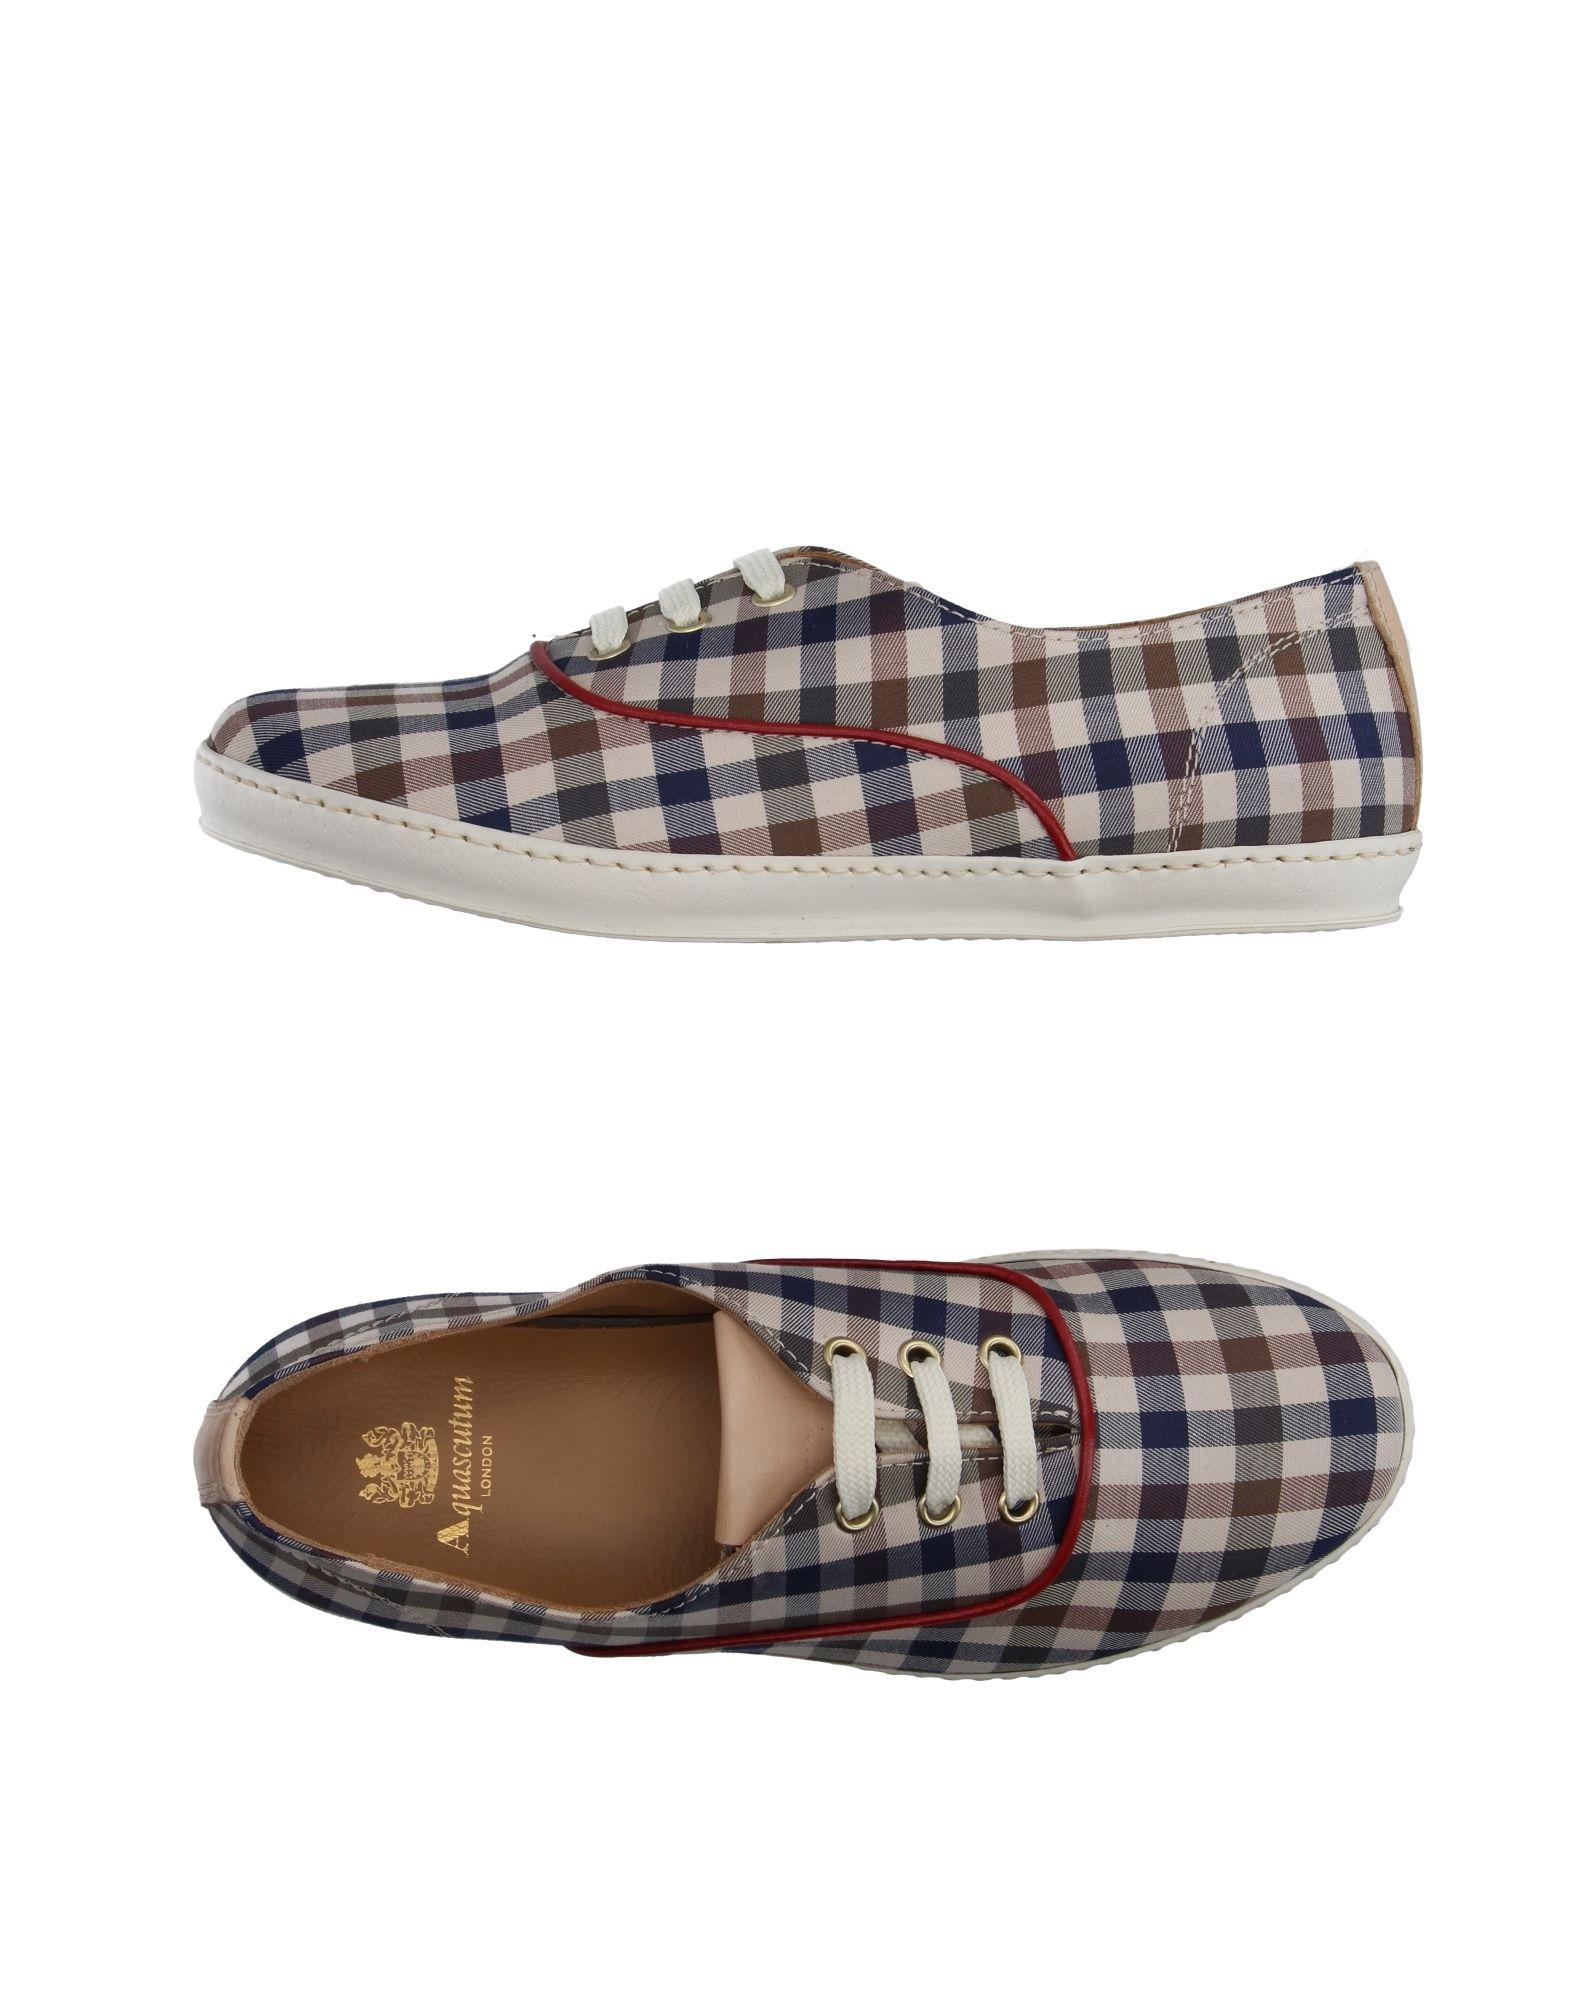 FOOTWEAR - Low-tops & sneakers Aquascutum cZY67JOMUL